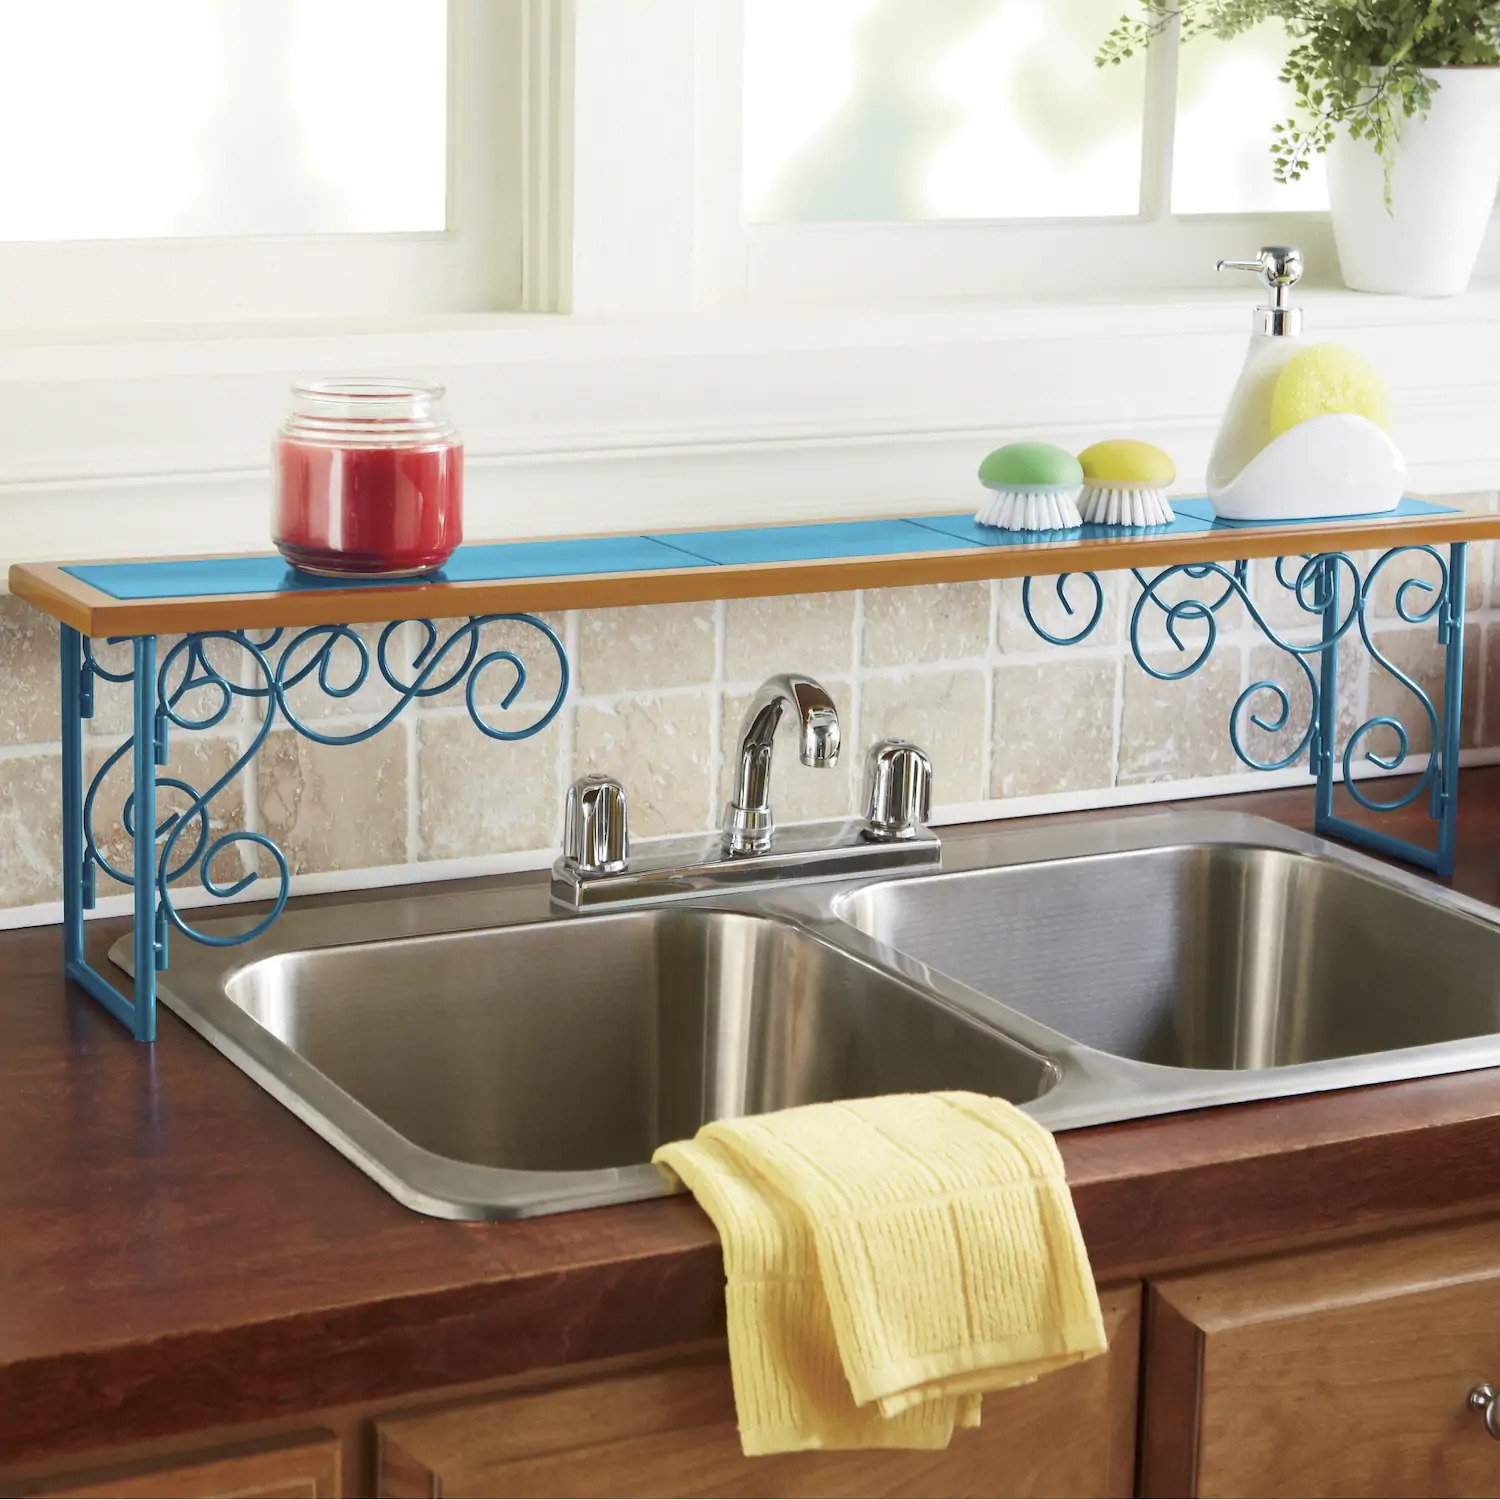 Colorblock Over-the-Sink Shelf, in yellow